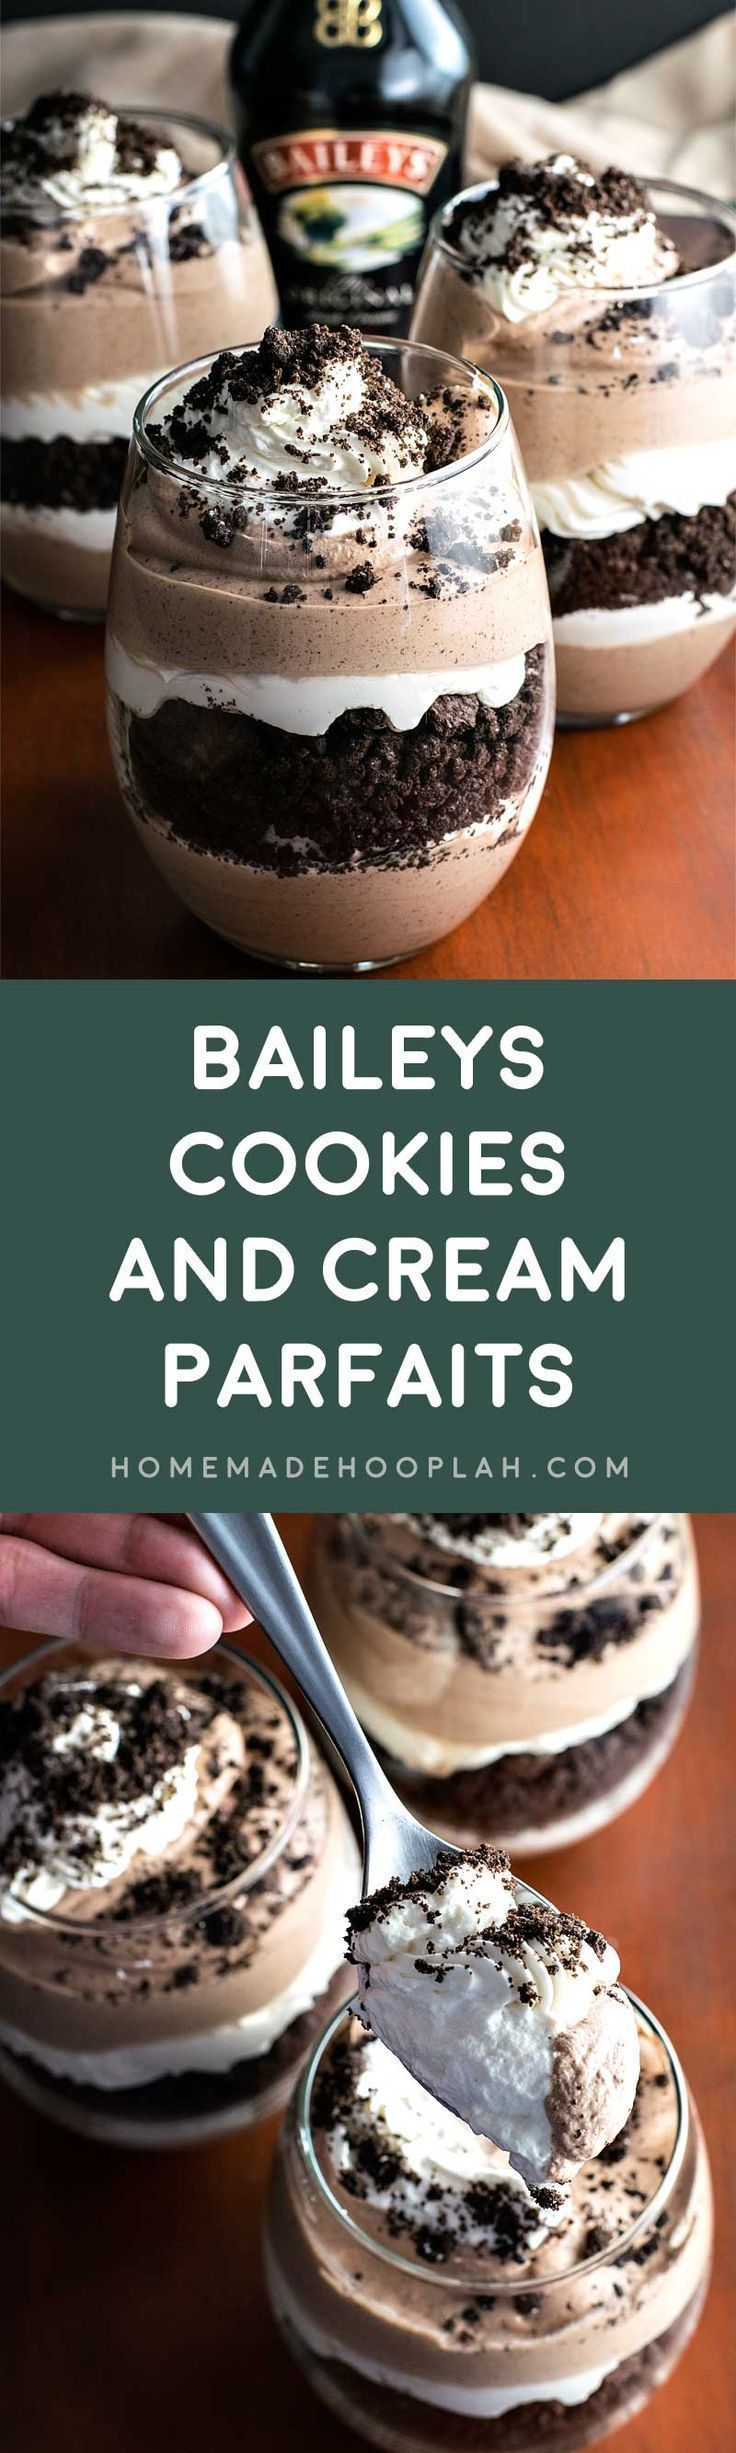 Baileys Cookies and Cream Parfaits! Layered chocolate and Baileys cream paired w